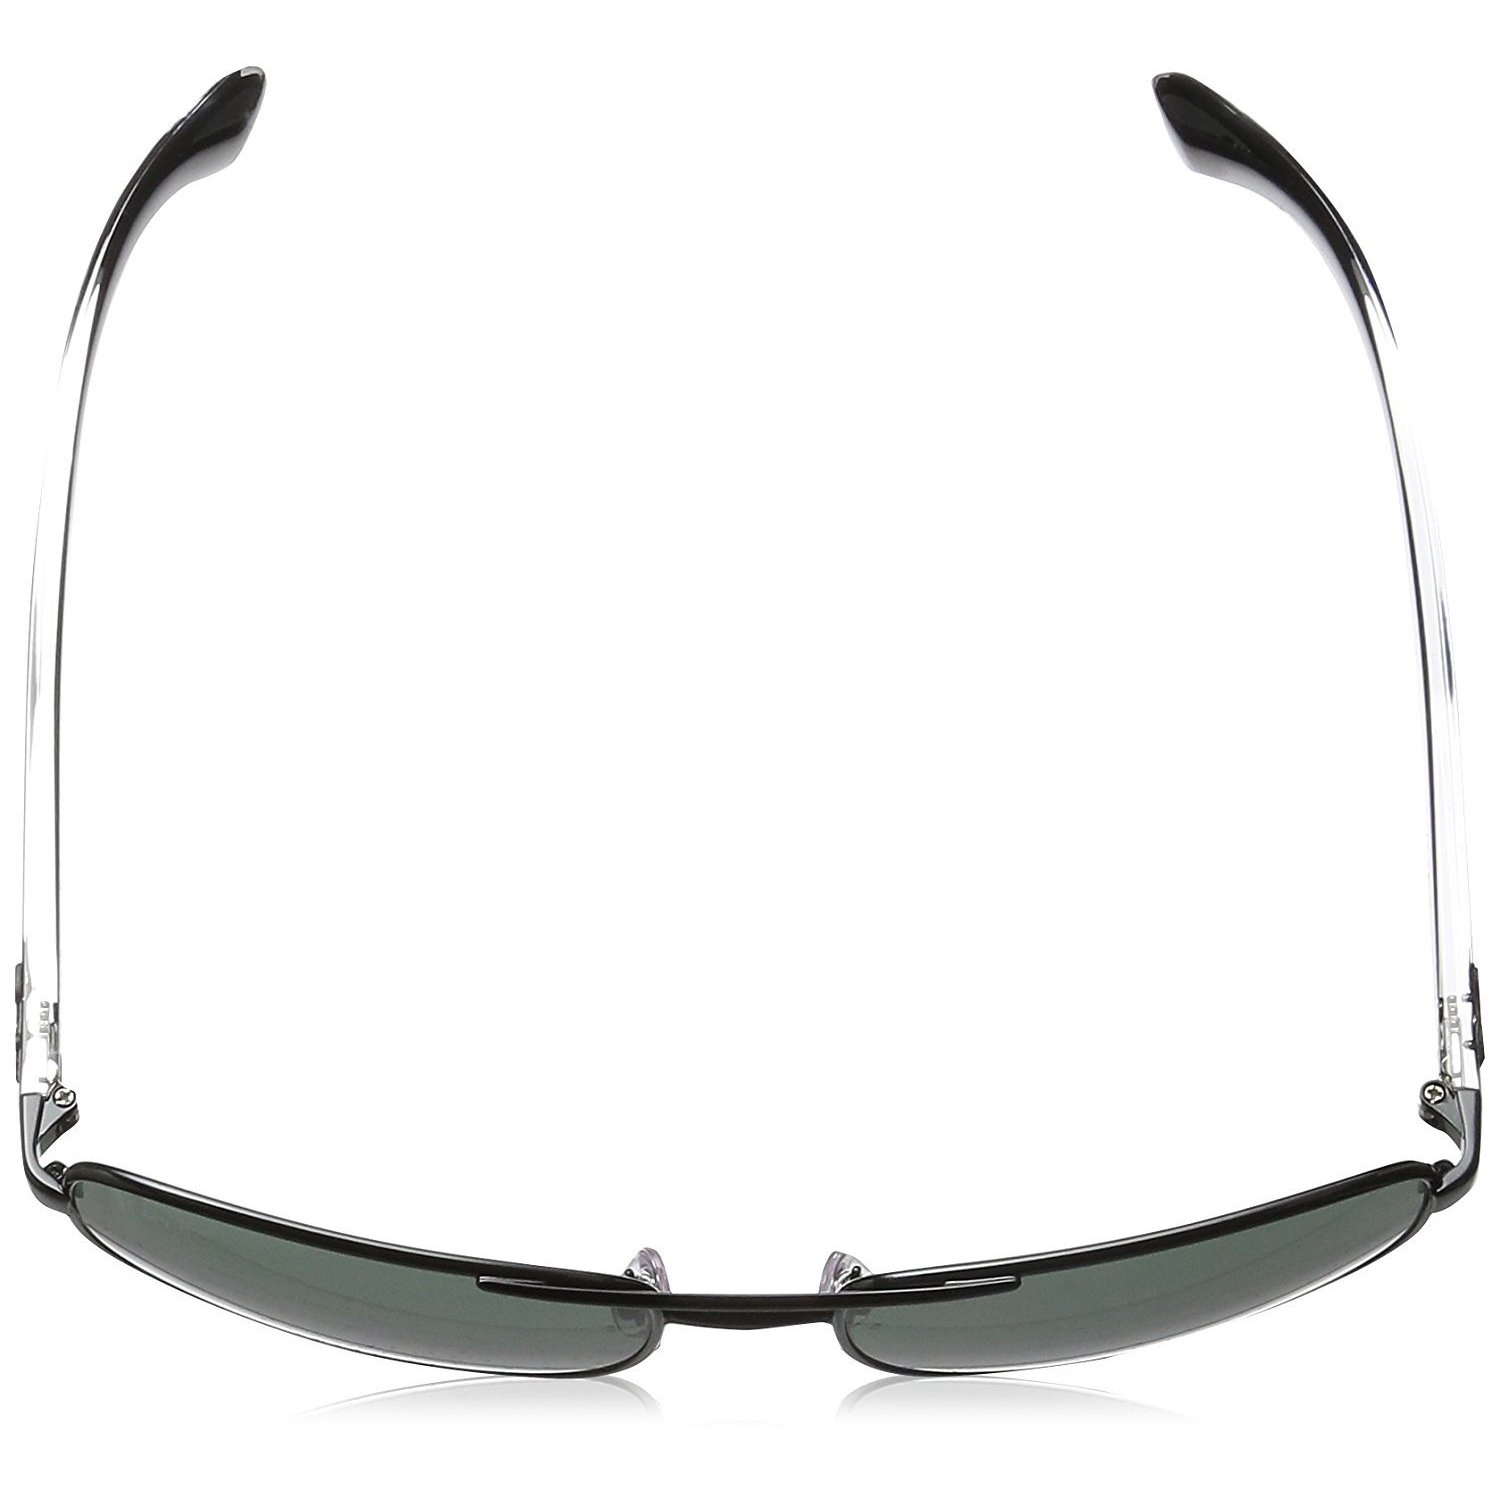 88c1e569f6e76 Shop Ray-Ban RB3533 Men s Black Transparent Frame Green Classic 57mm Lens  Sunglasses - Free Shipping Today - Overstock - 15371513